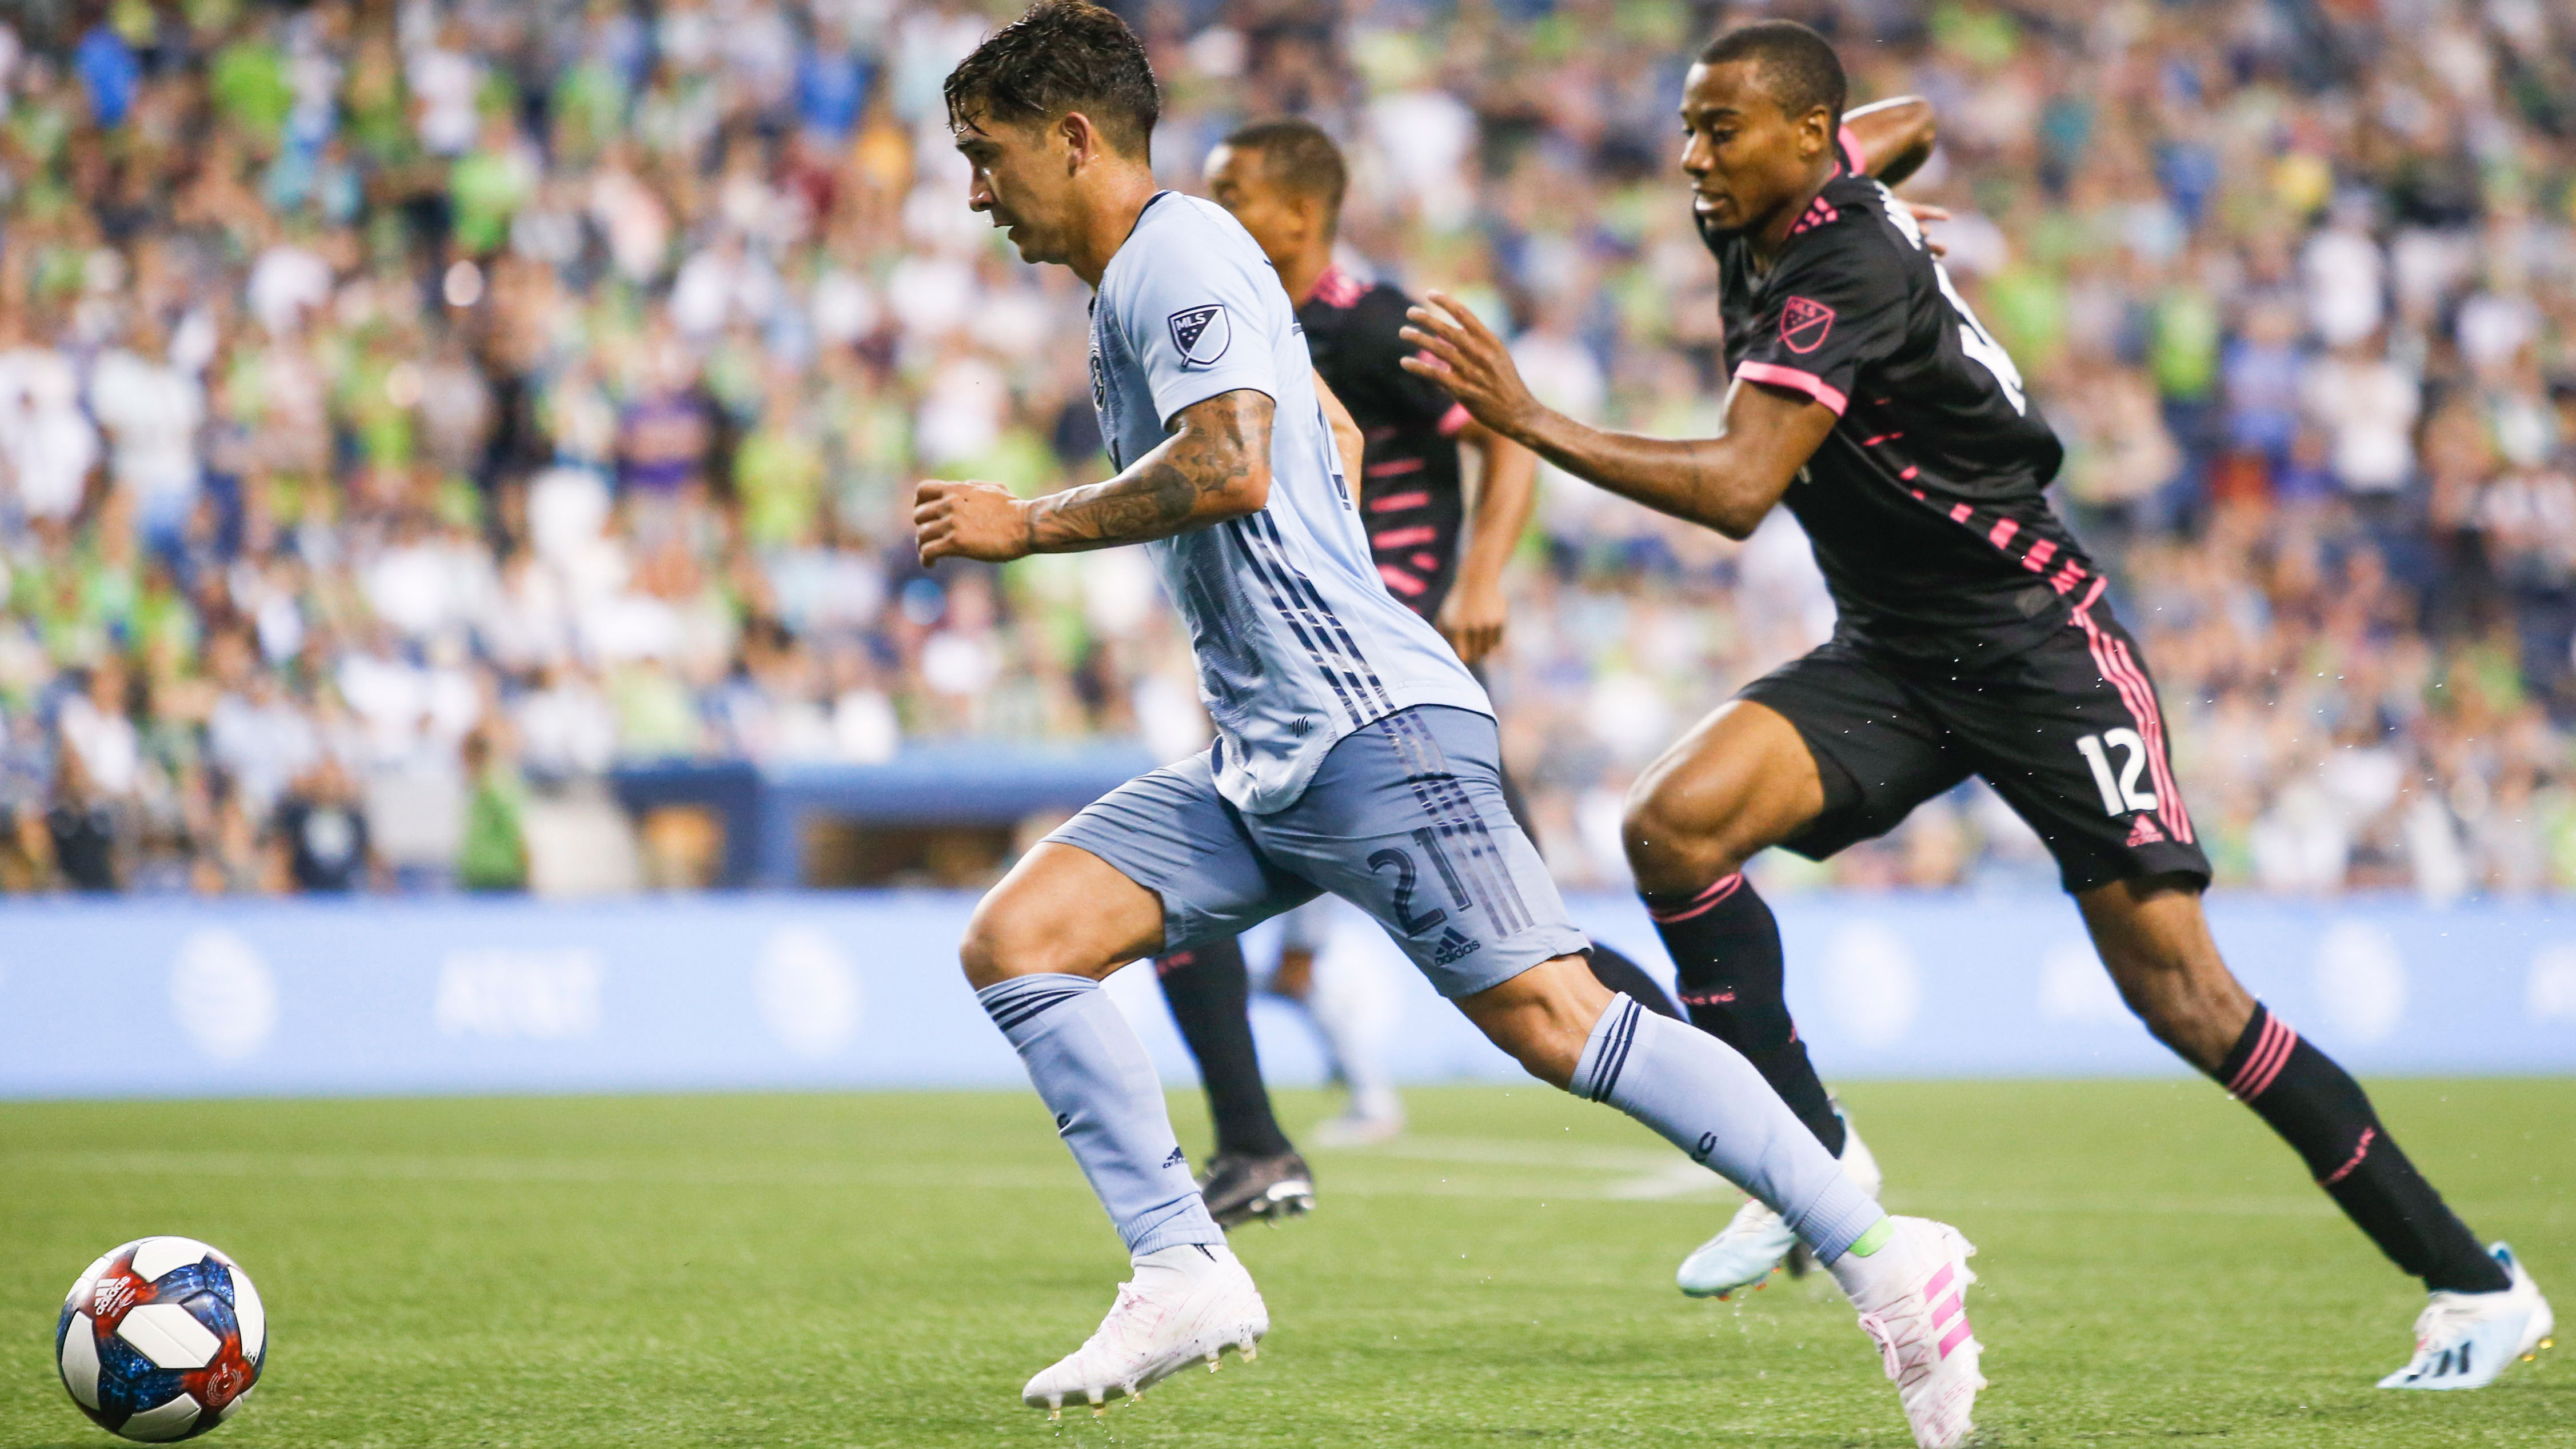 Gutierrez' two goals spark Sporting KC to 3-2 win at Seattle